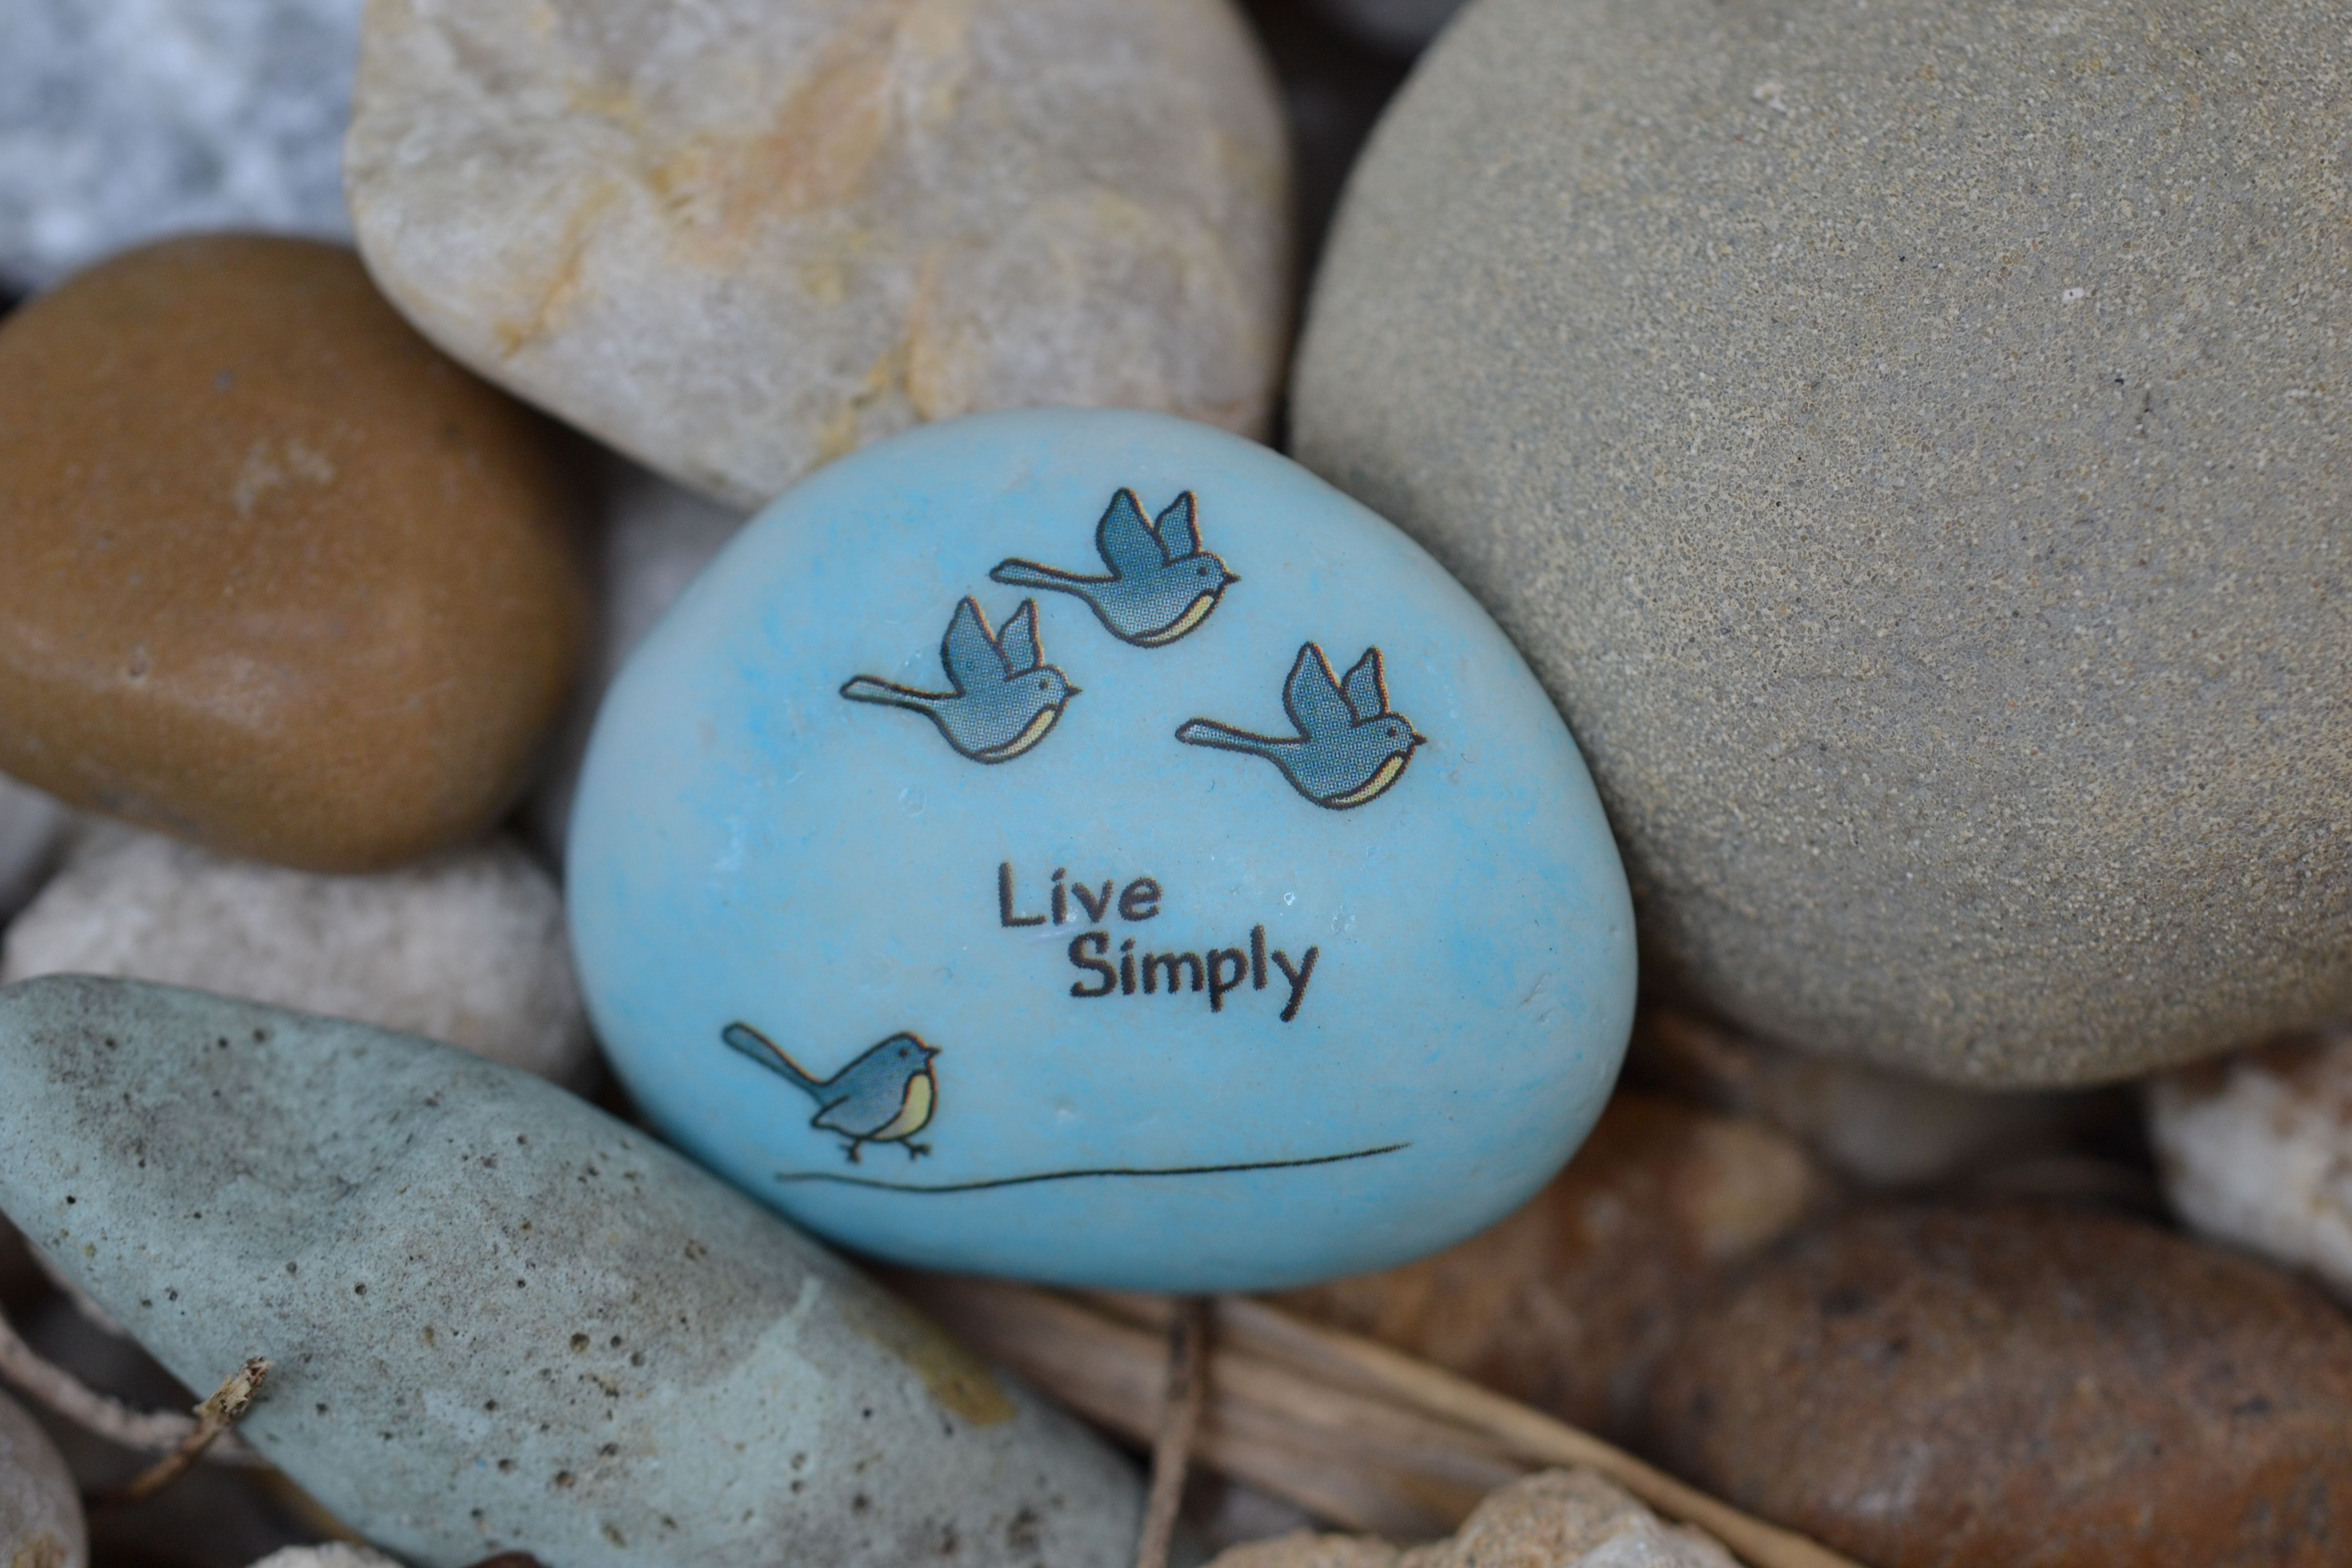 Live simply rock that rocks!